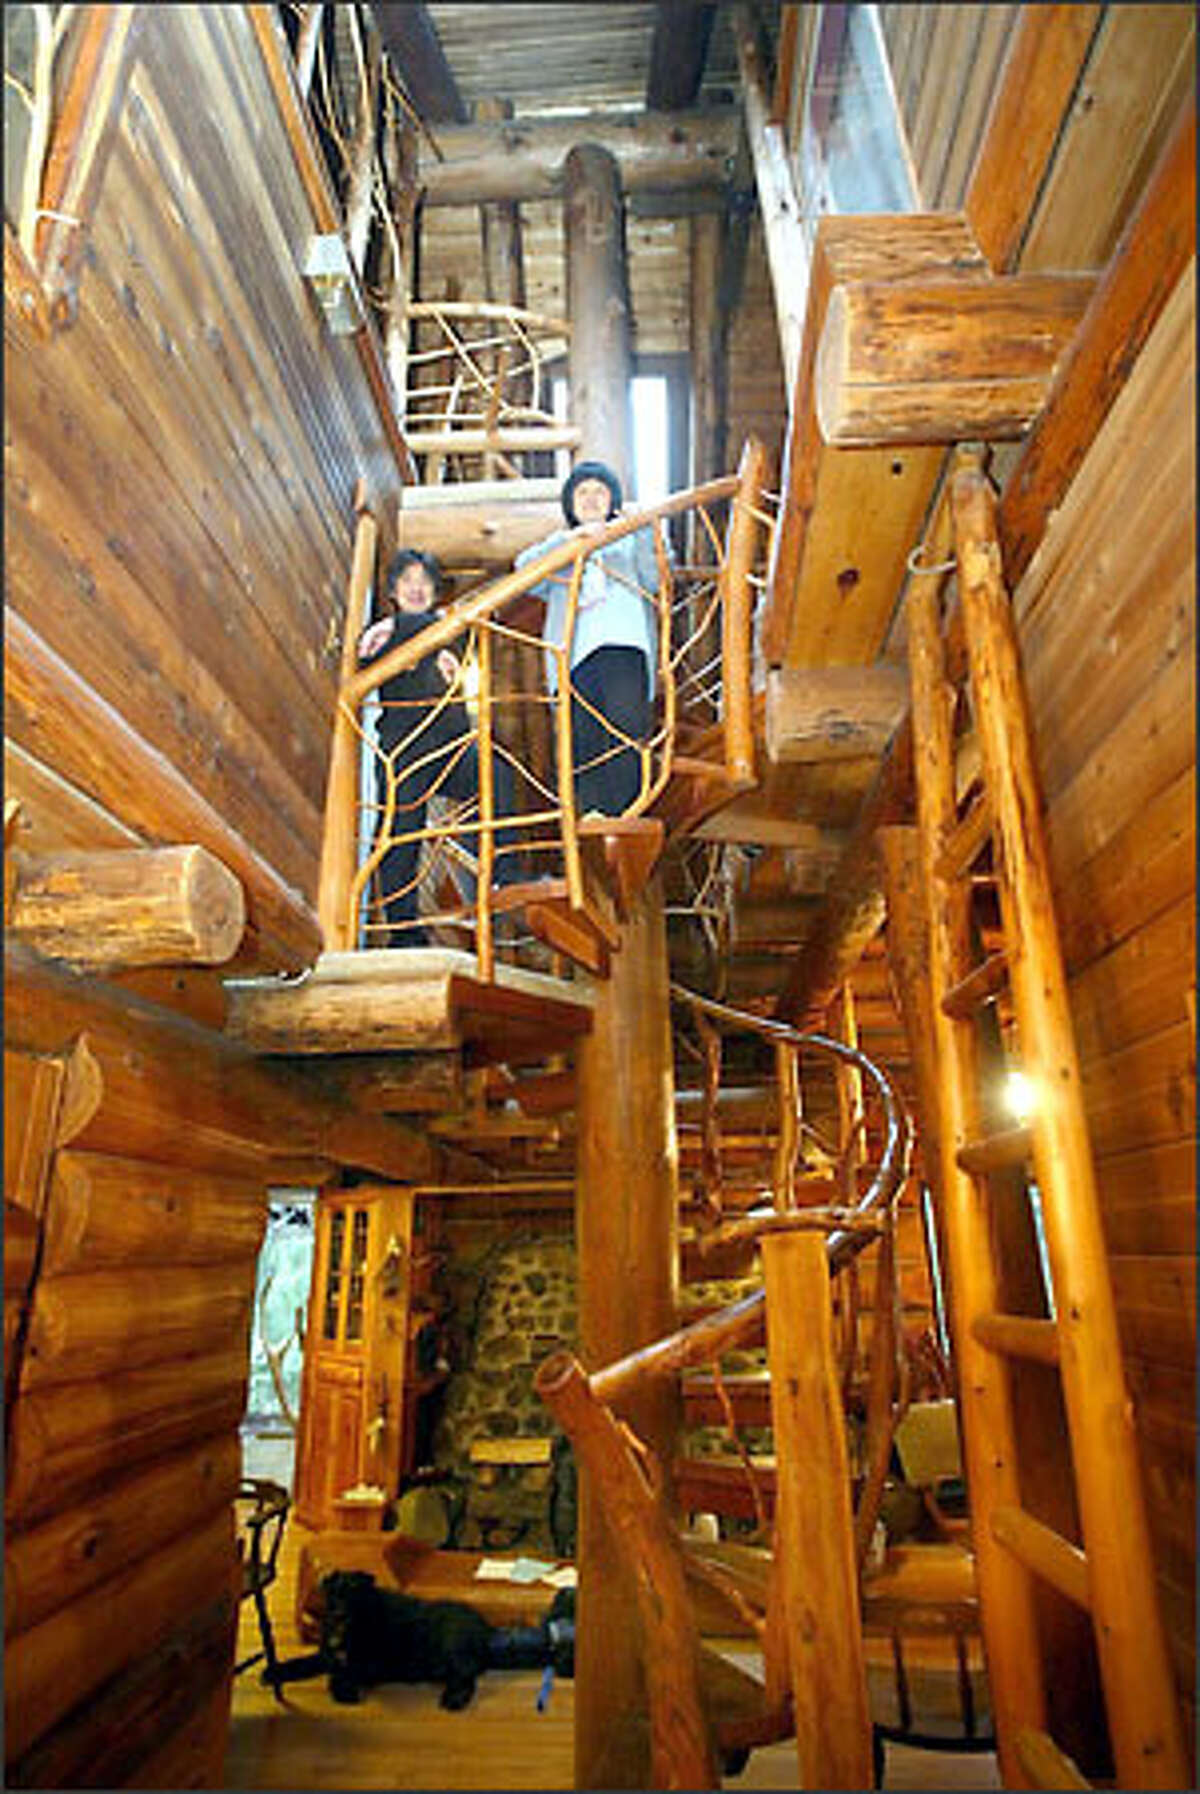 Chiaki Takanohara, left, and Kyoko Niikuni stand on one of the landings of the spiral staircase in their log house they built near Carnation. They began building in 1983, one log at a time, and moved into their creation in 1985.